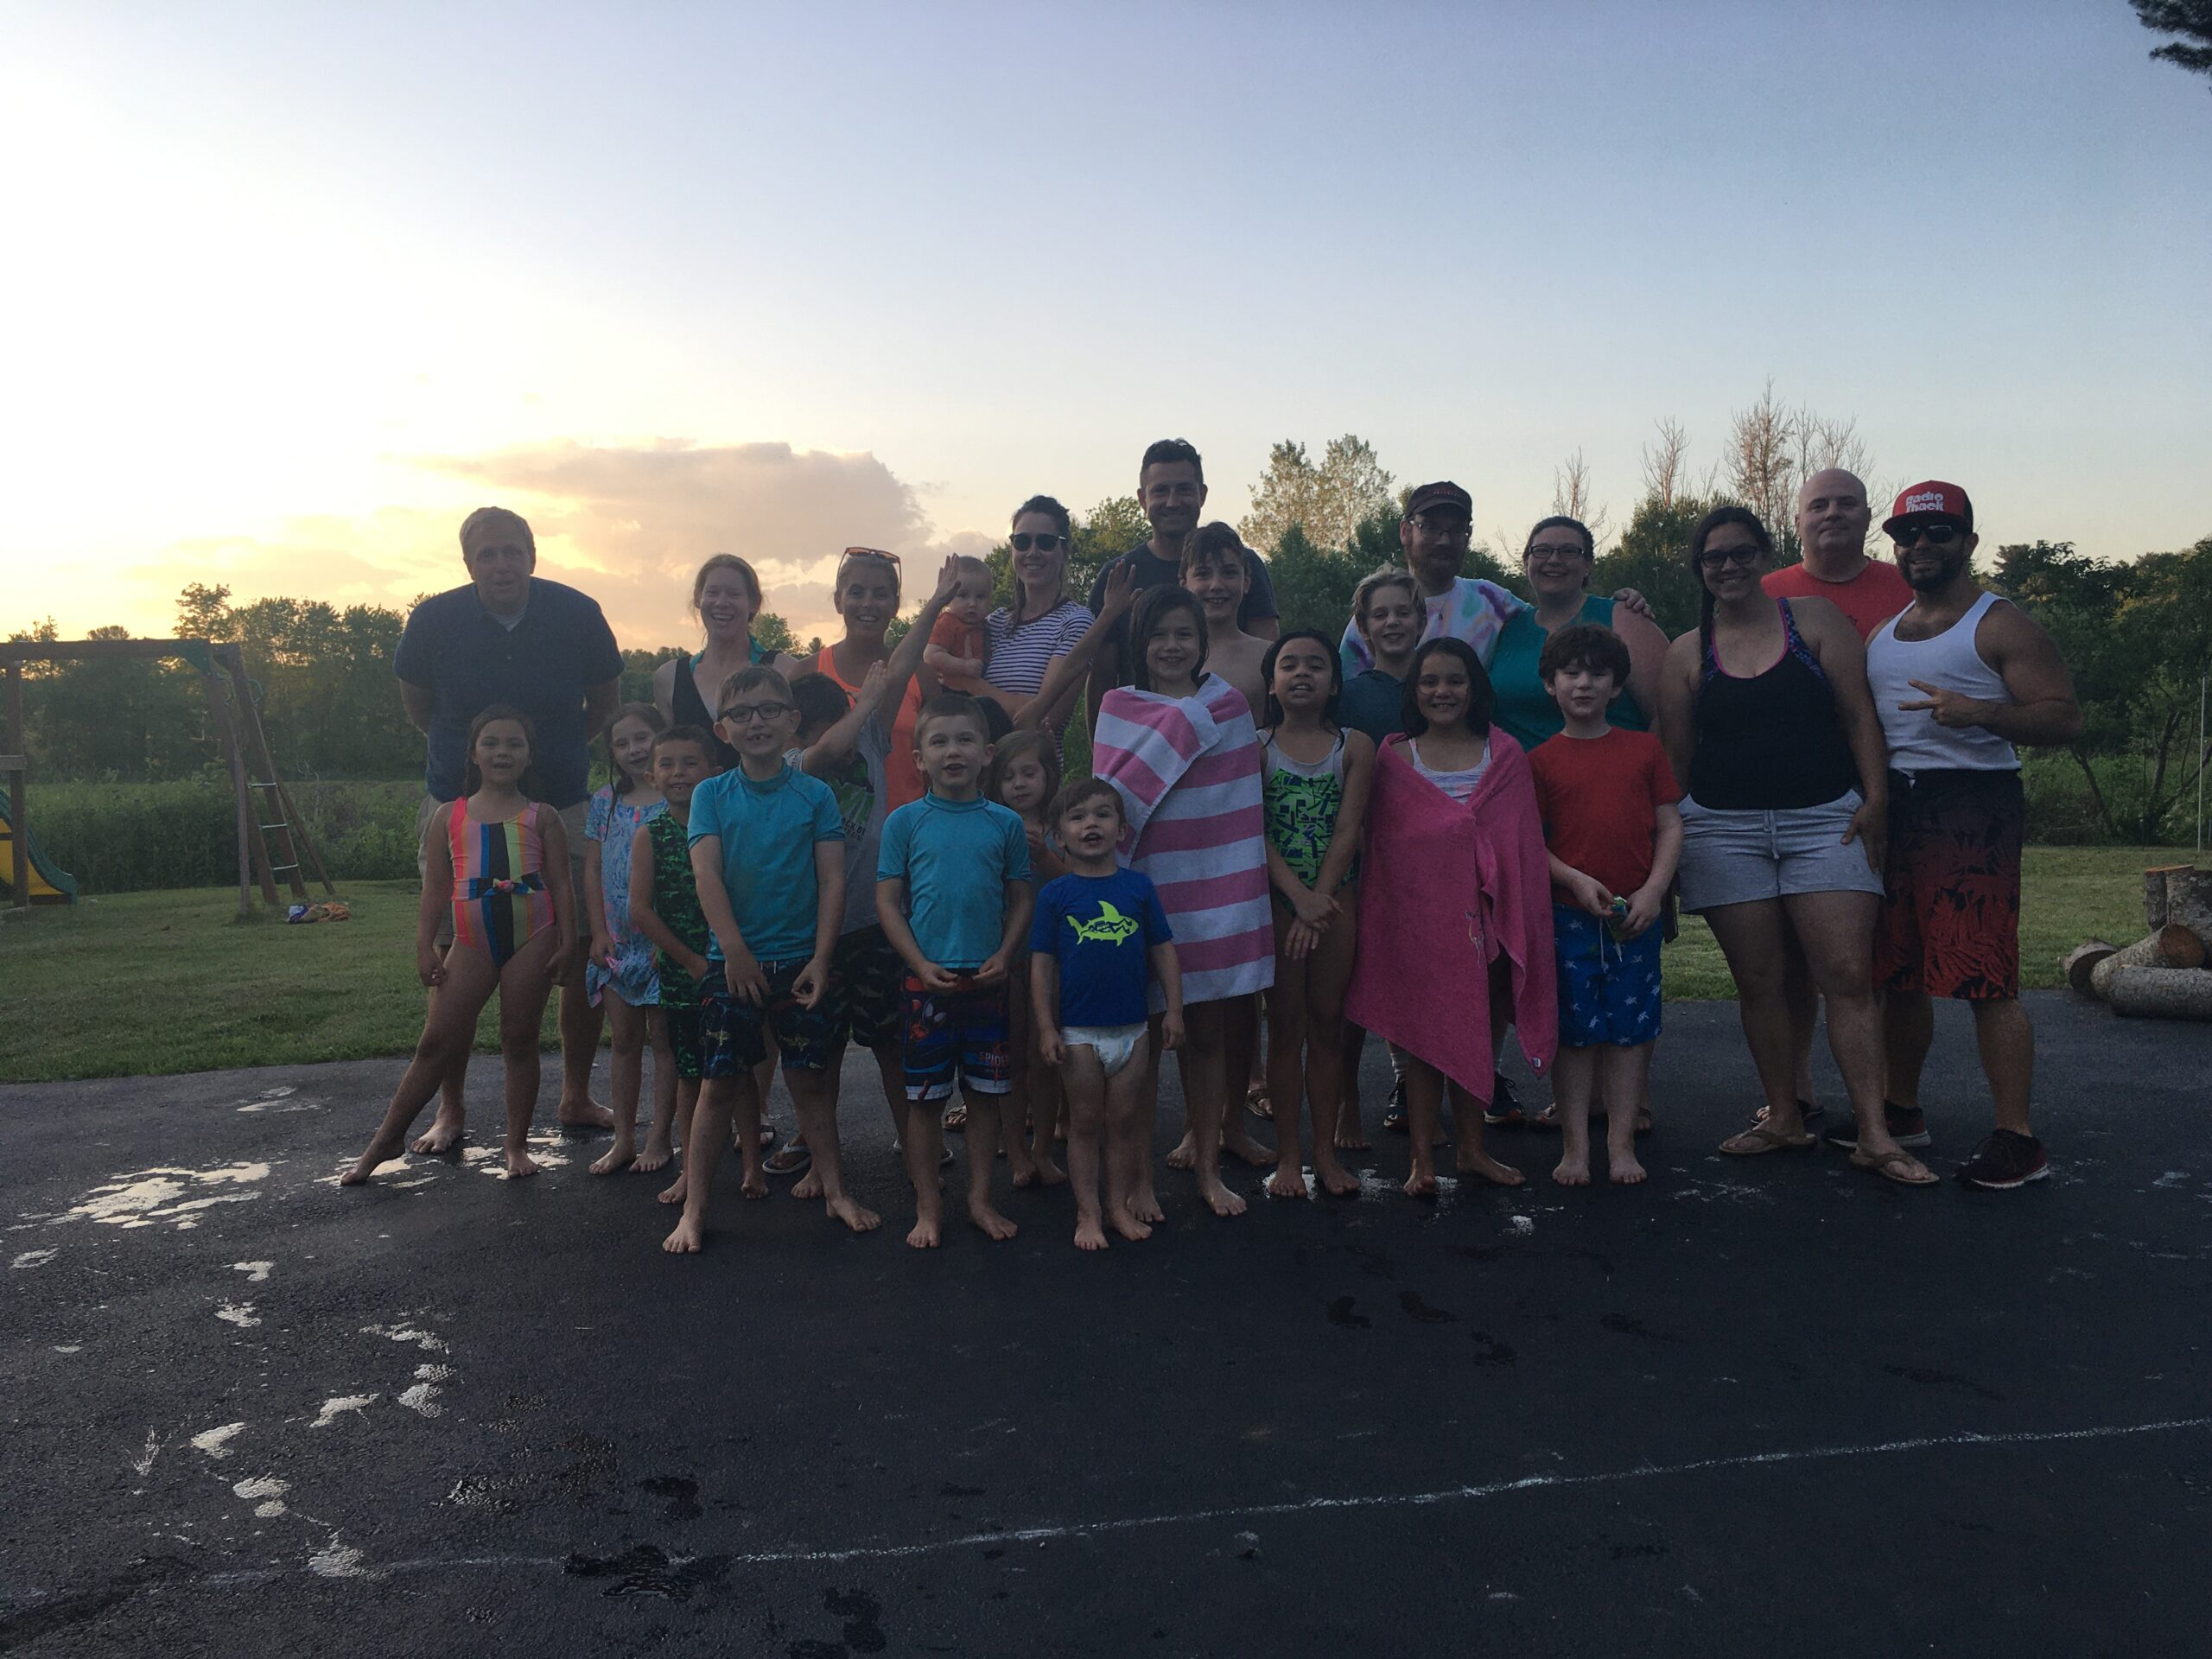 Fire Fly – End of the Year Cook-Out and Pool Party at the Rice's!